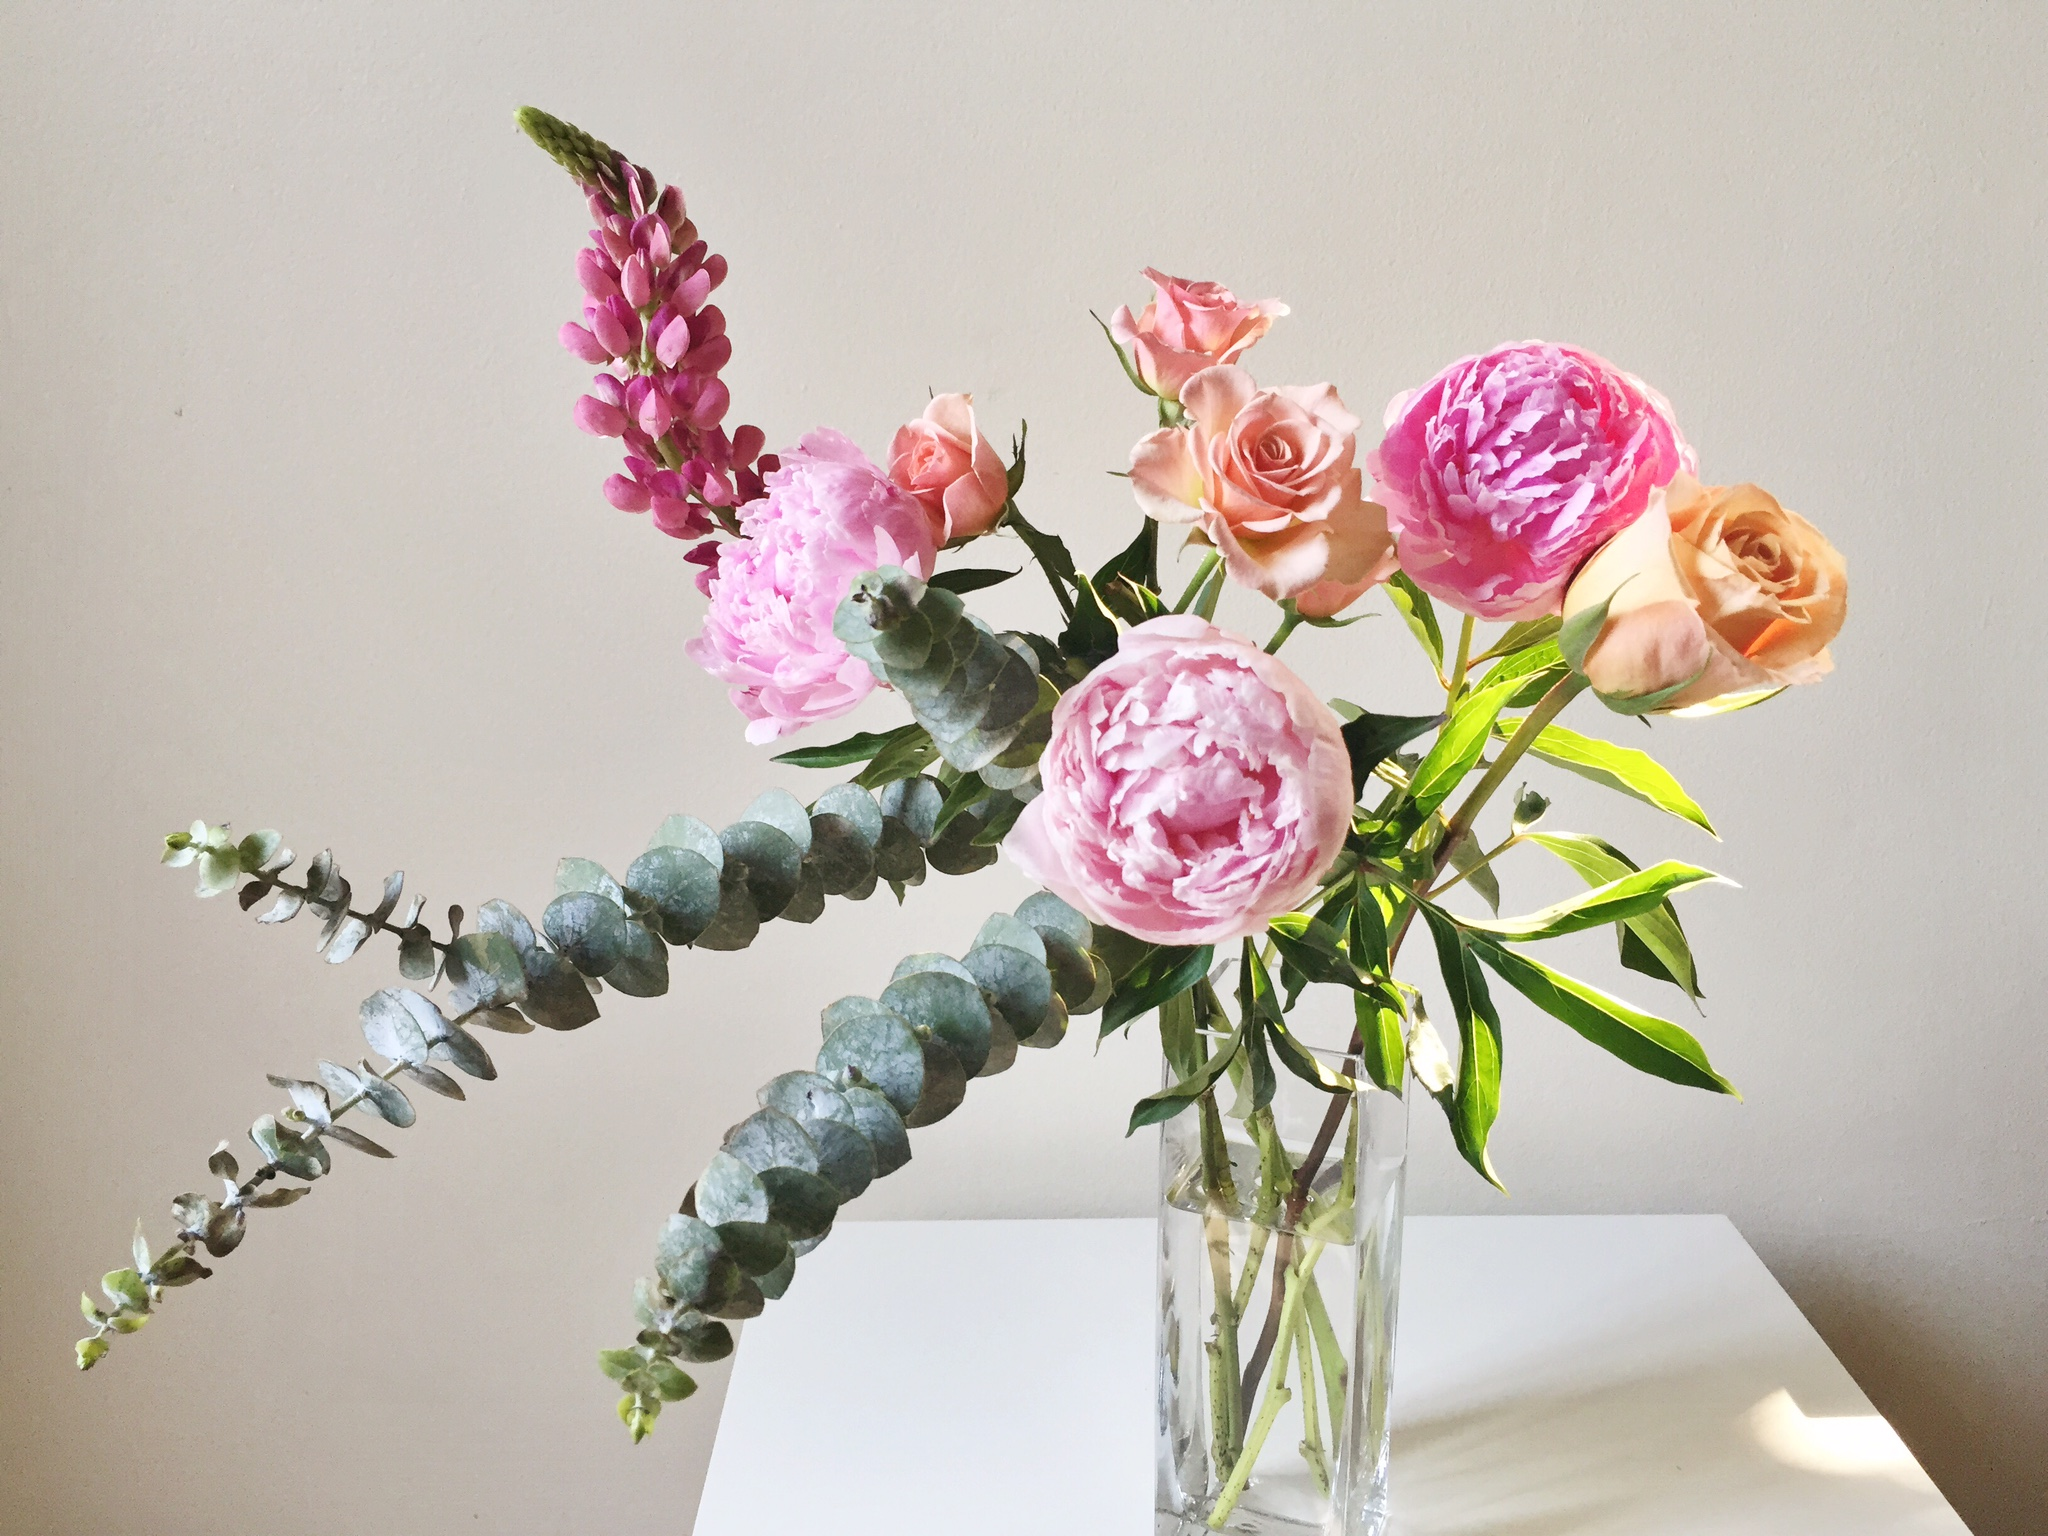 Gorgeous blooms from Toronto Flower Market